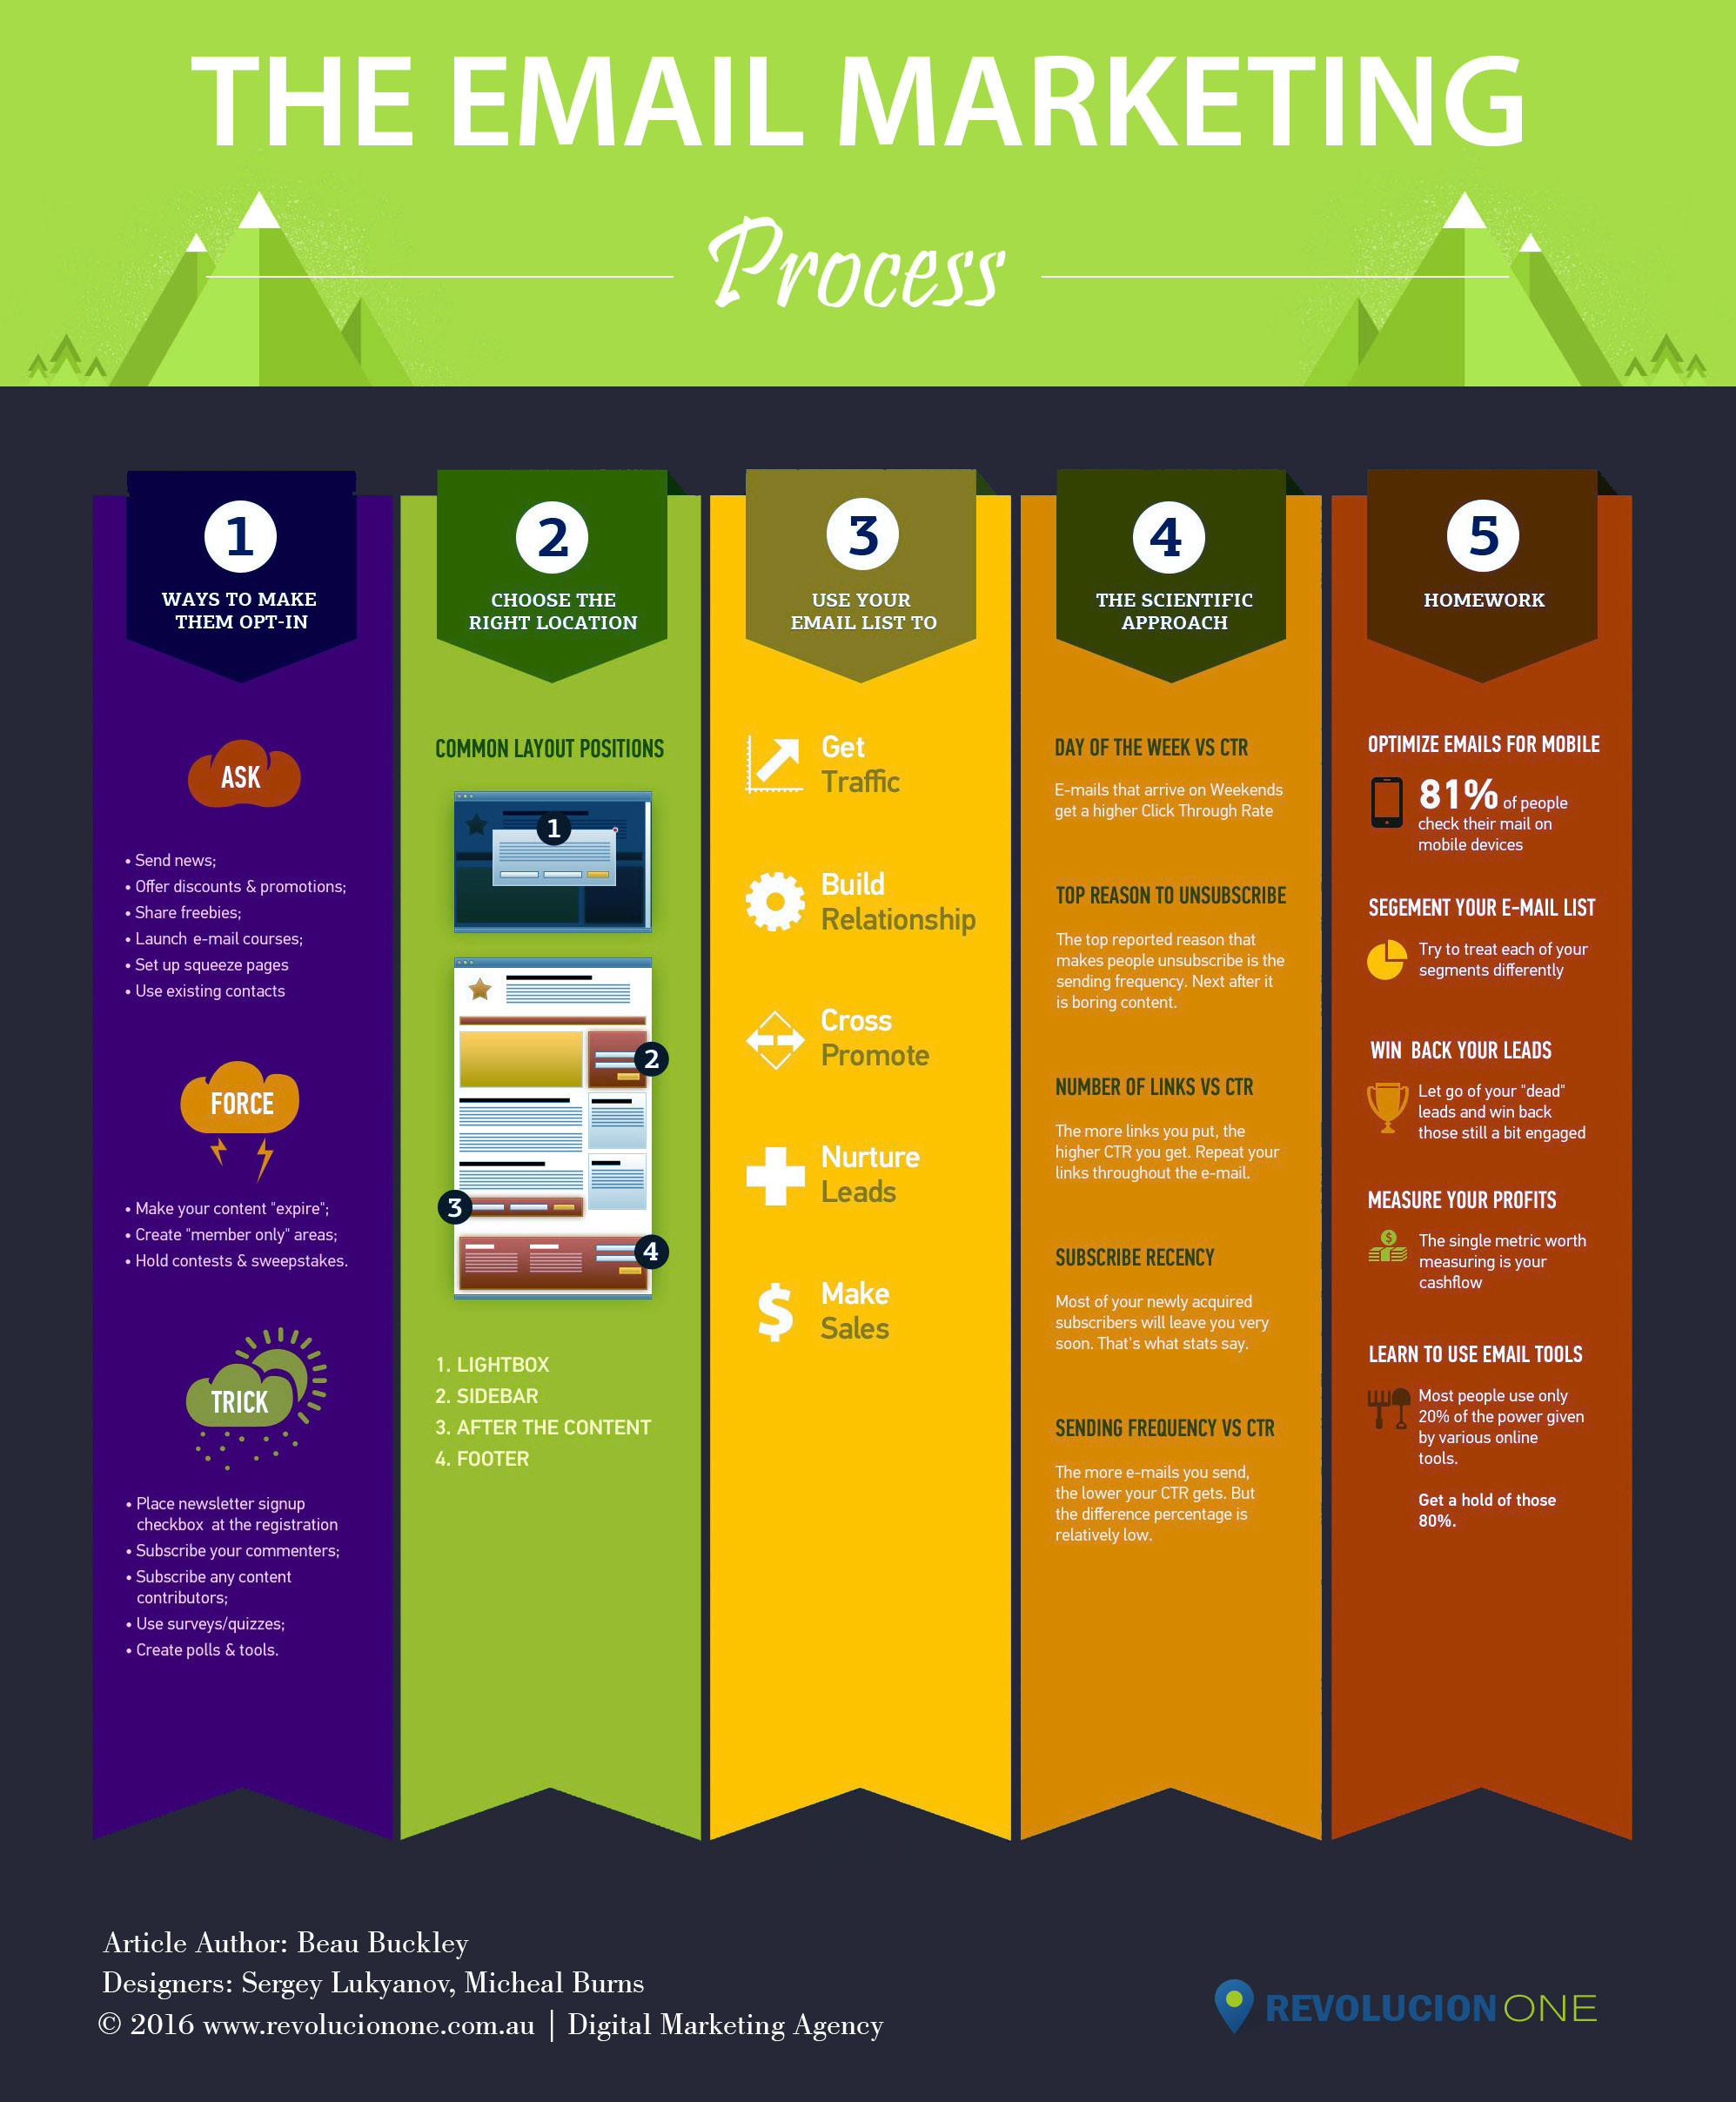 Email Marketing Process Infographic